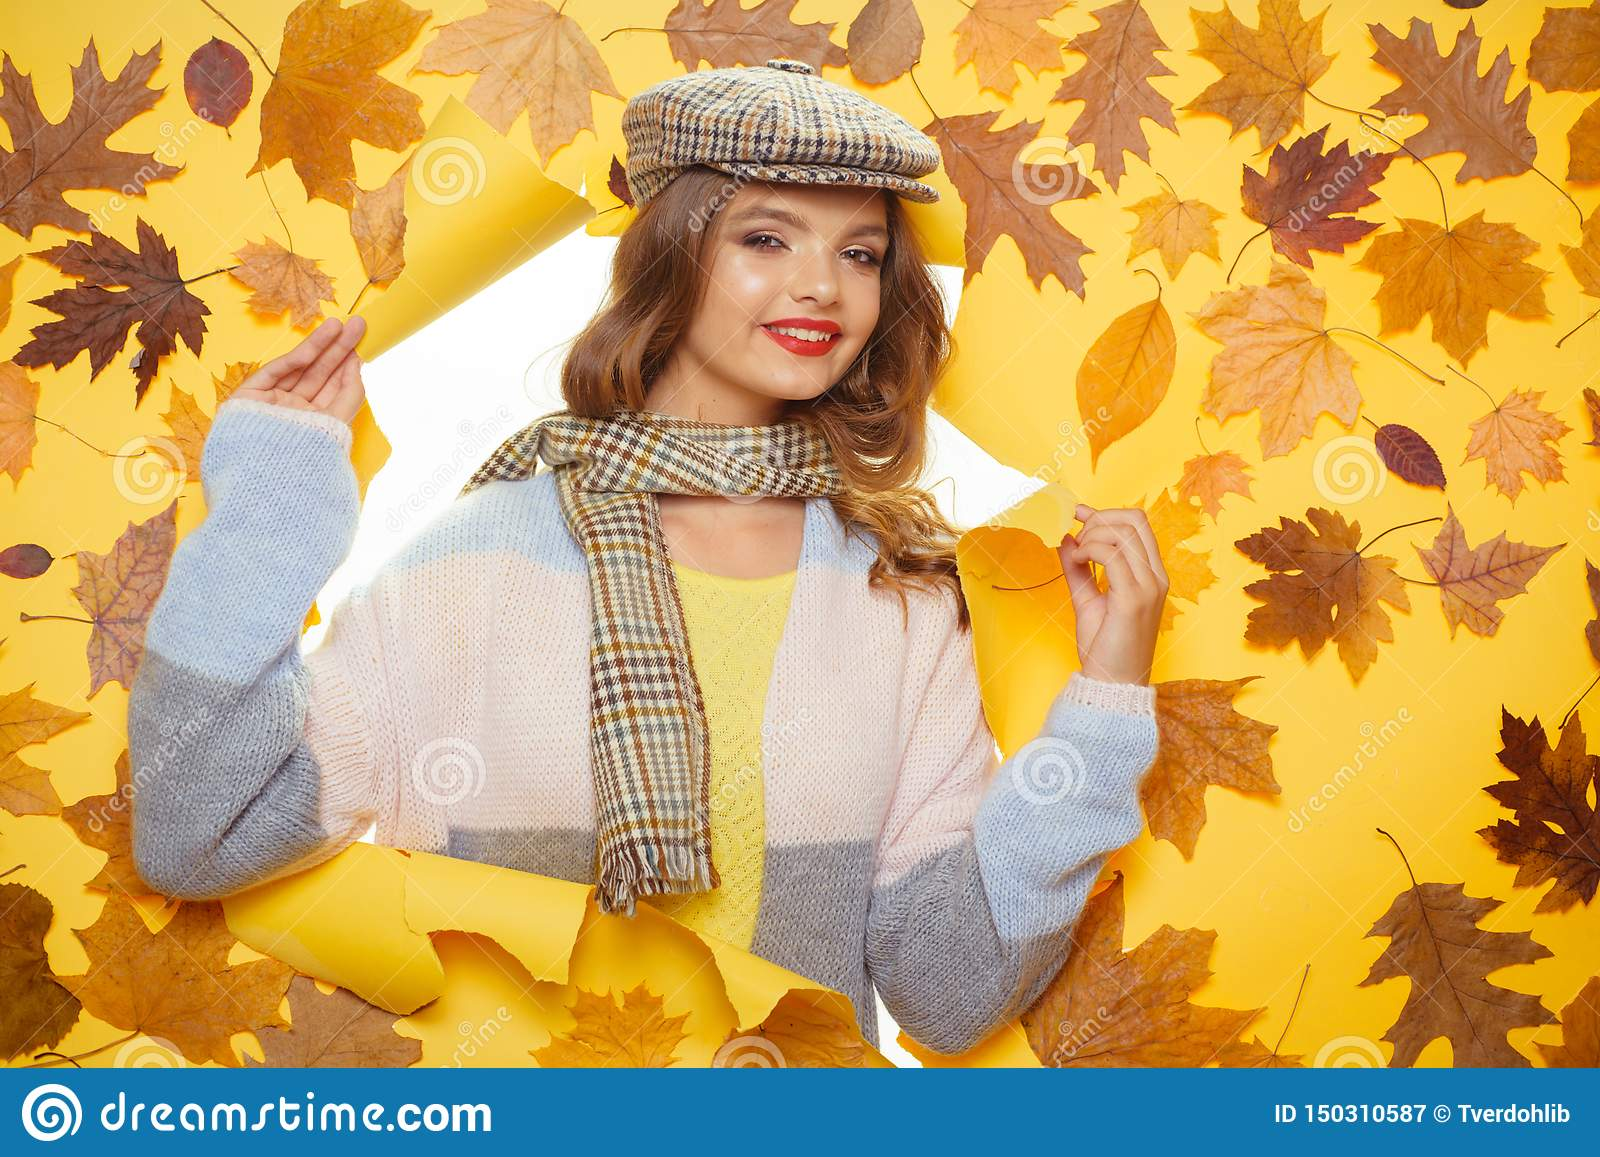 Getting ready for autumn season. Casual fashion trends for fall. Pretty woman wear autumn fashion accessories. Fashion